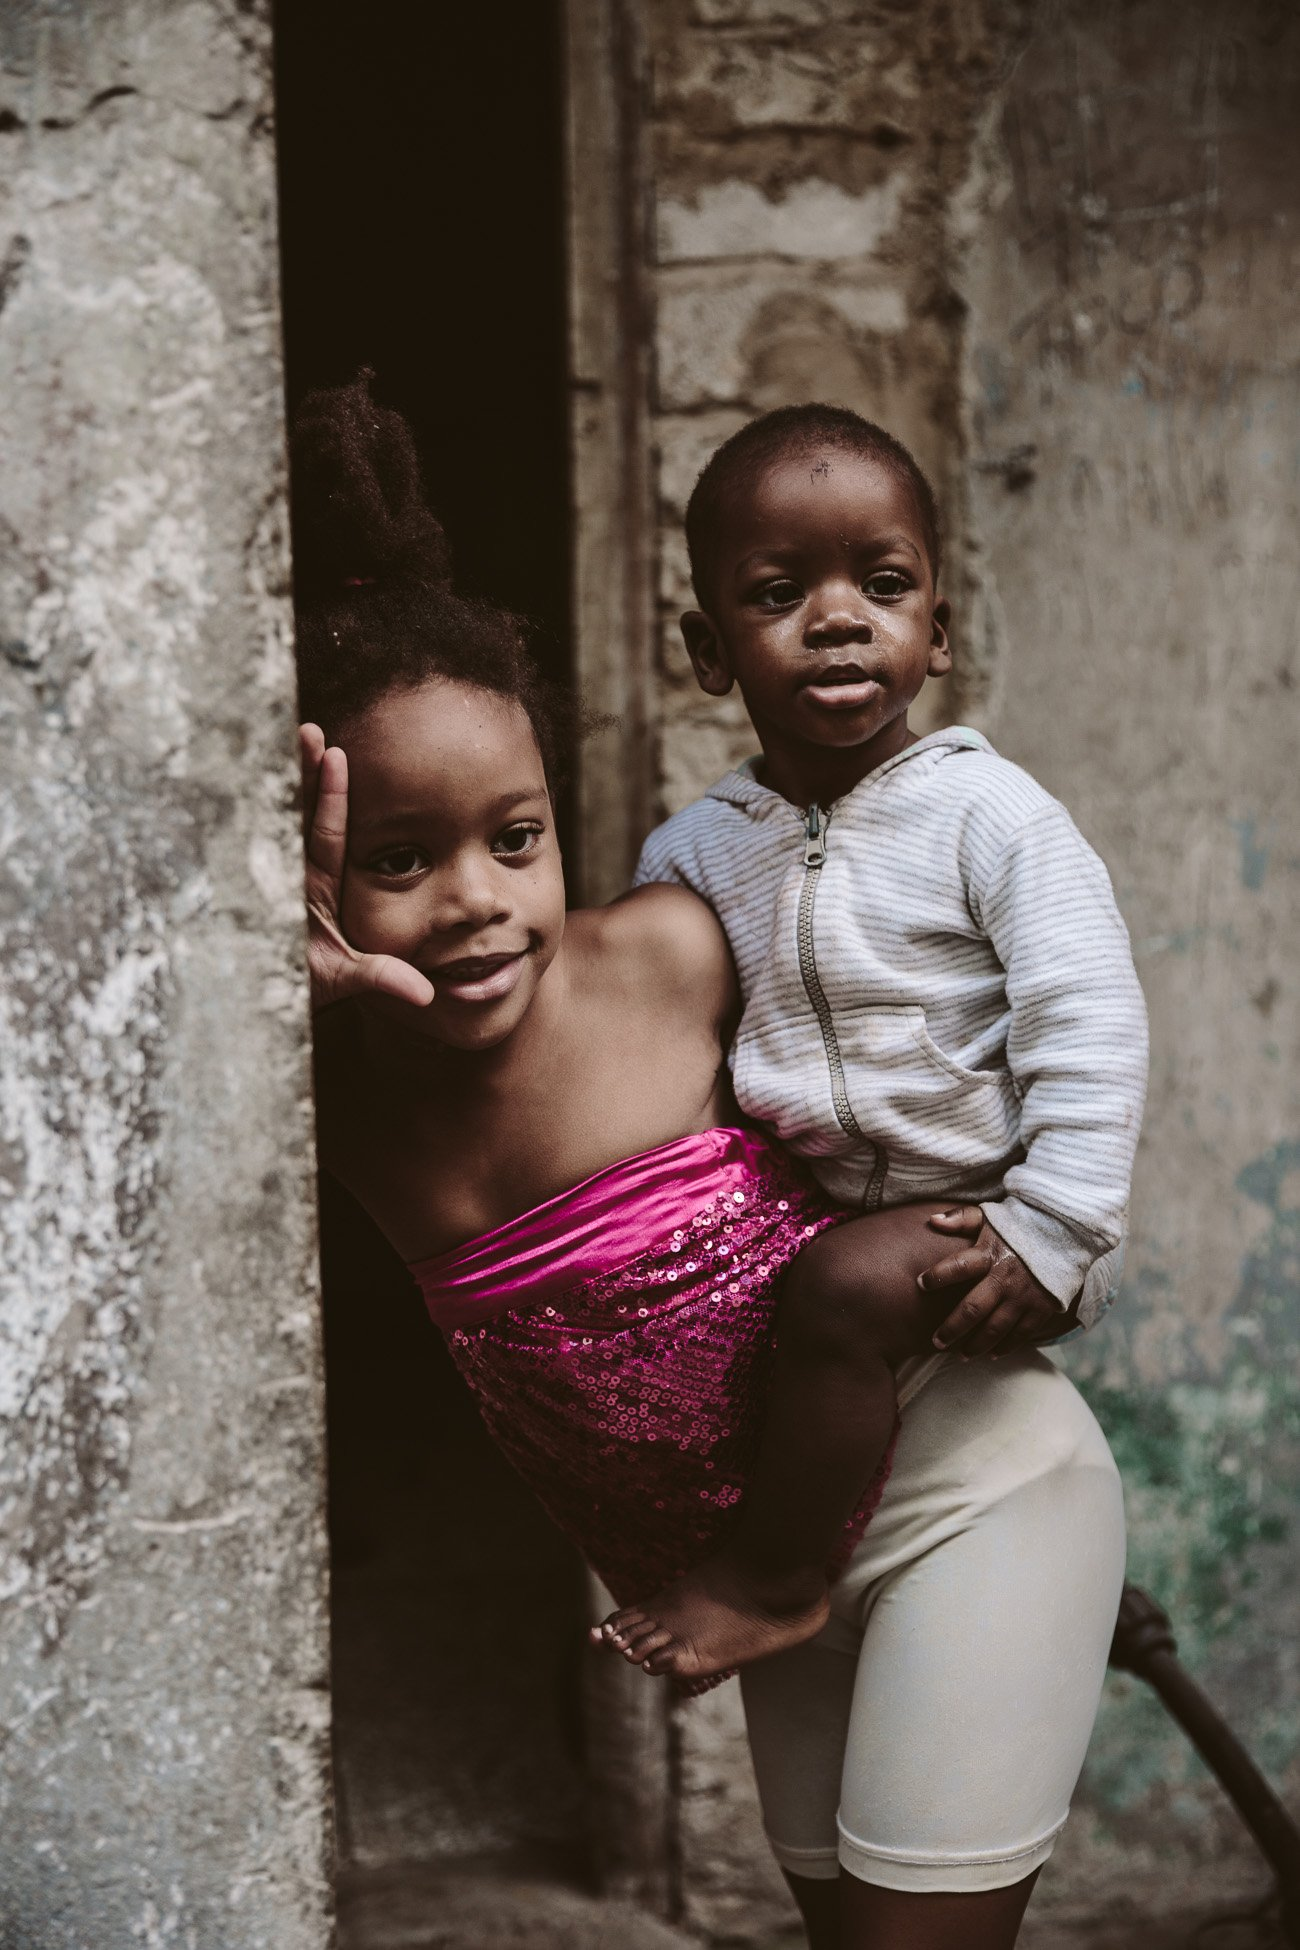 A girl and a boy in Havana Cuba